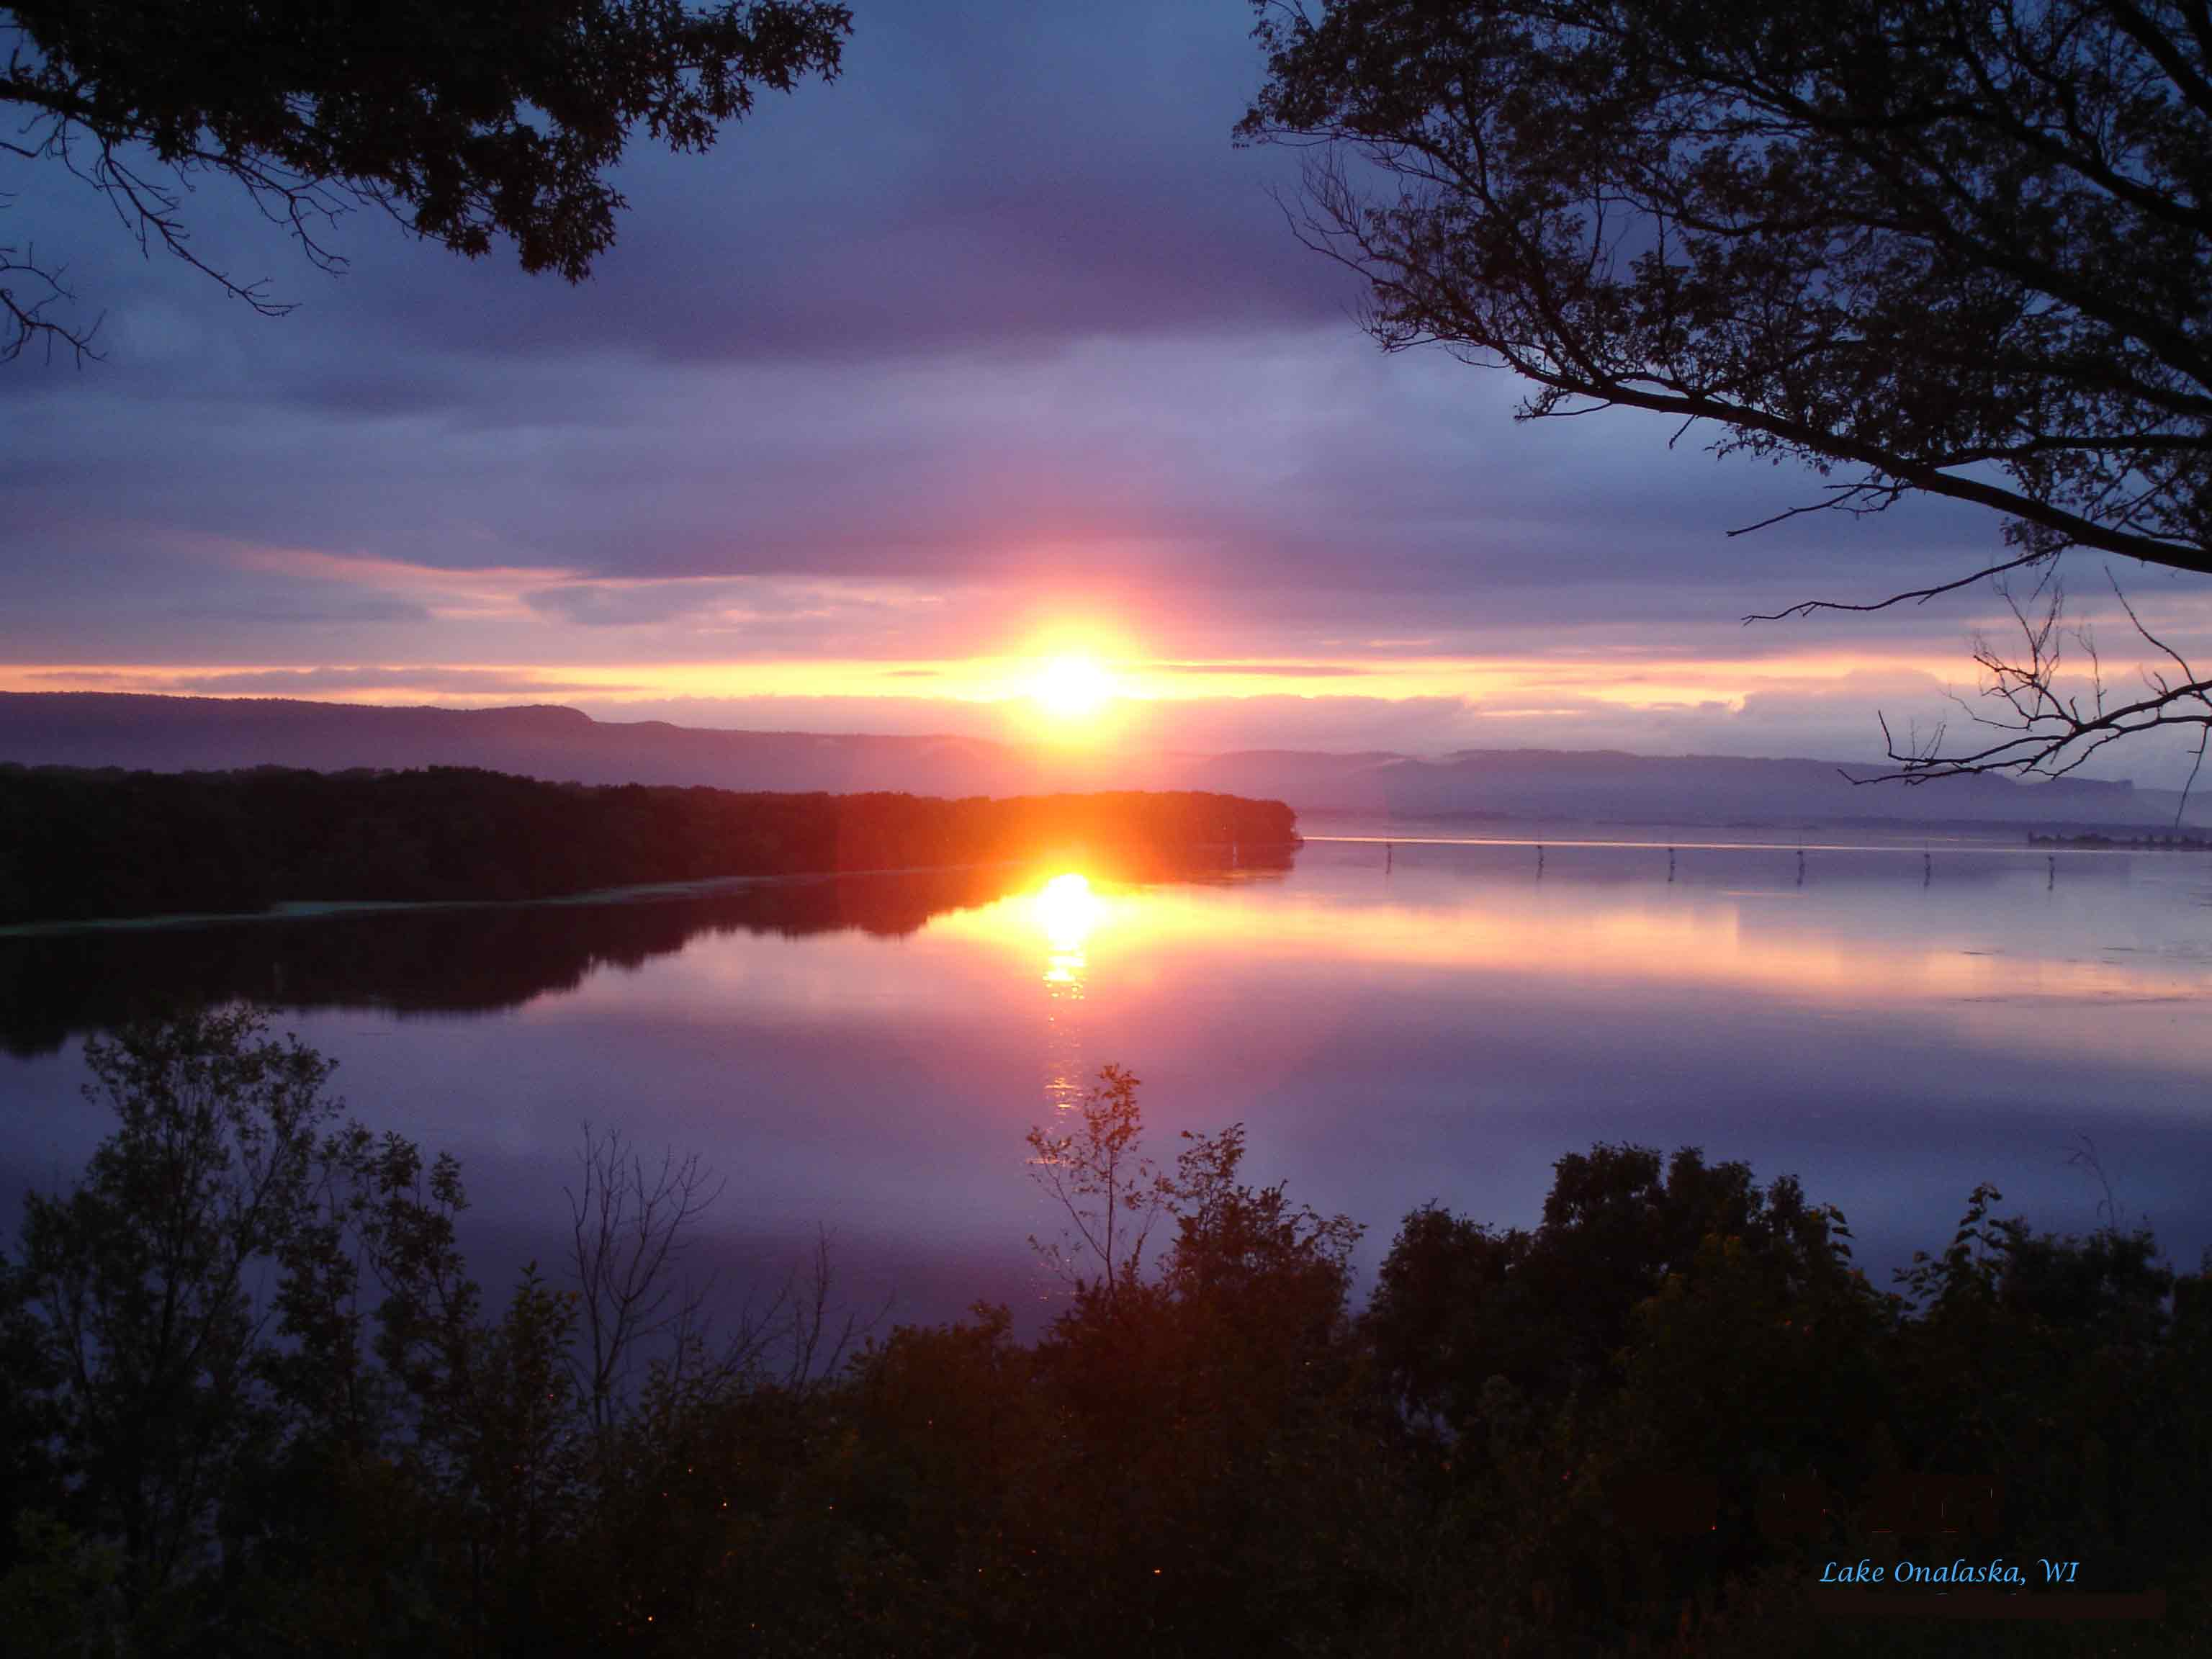 sunset-lake-onalaska-wi